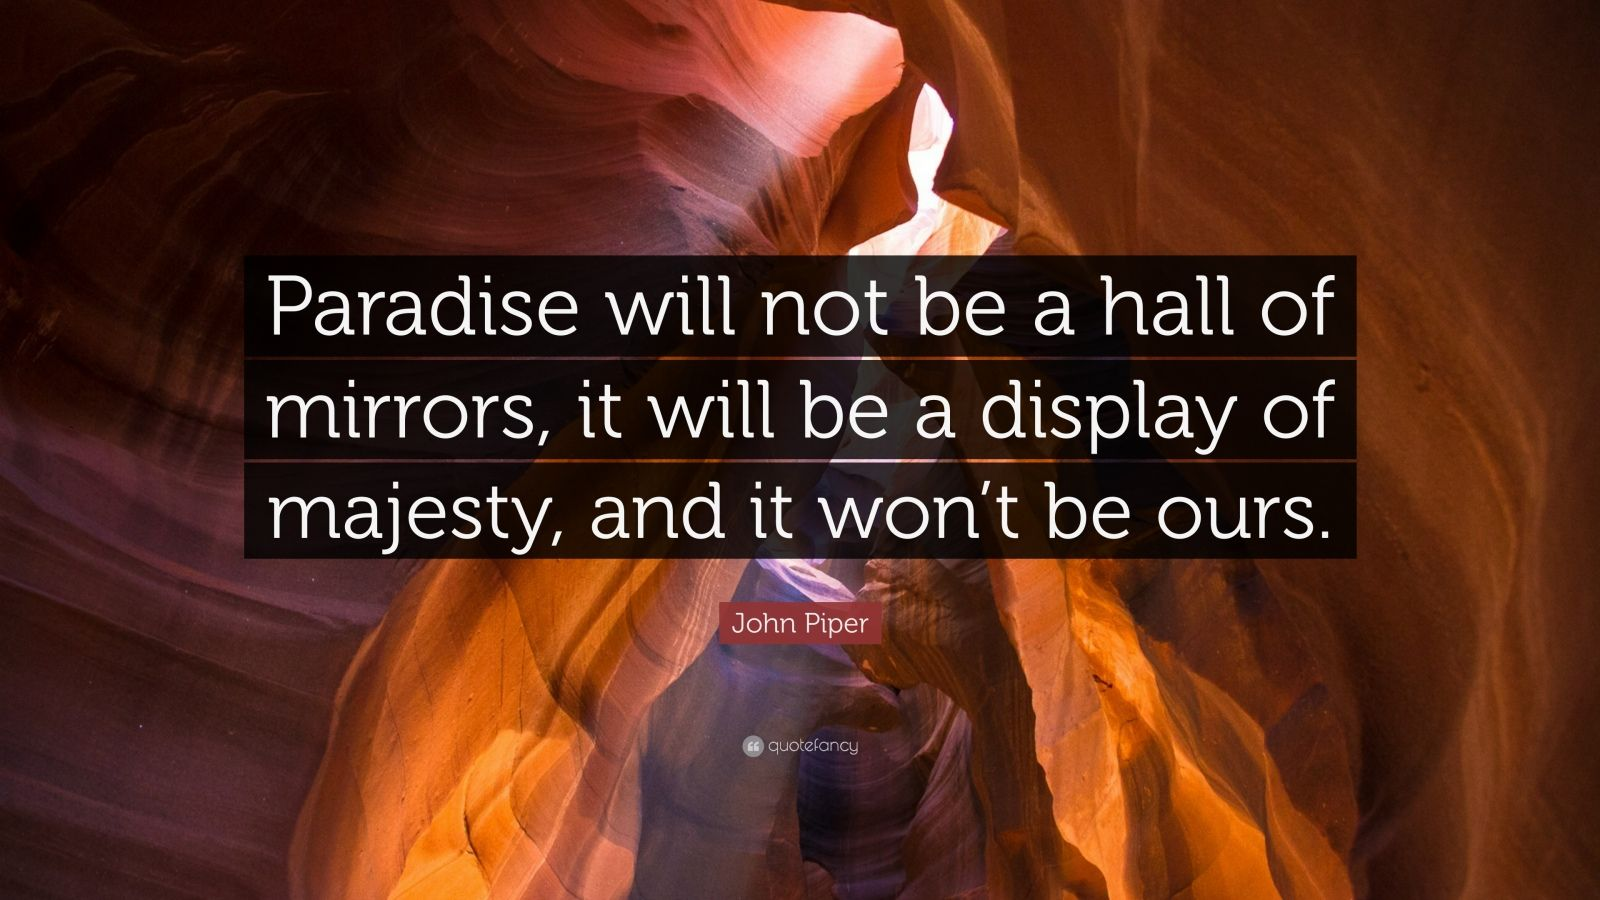 """John Piper Quote: """"Paradise will not be a hall of mirrors, it will be a display of majesty, and it won't be ours."""""""